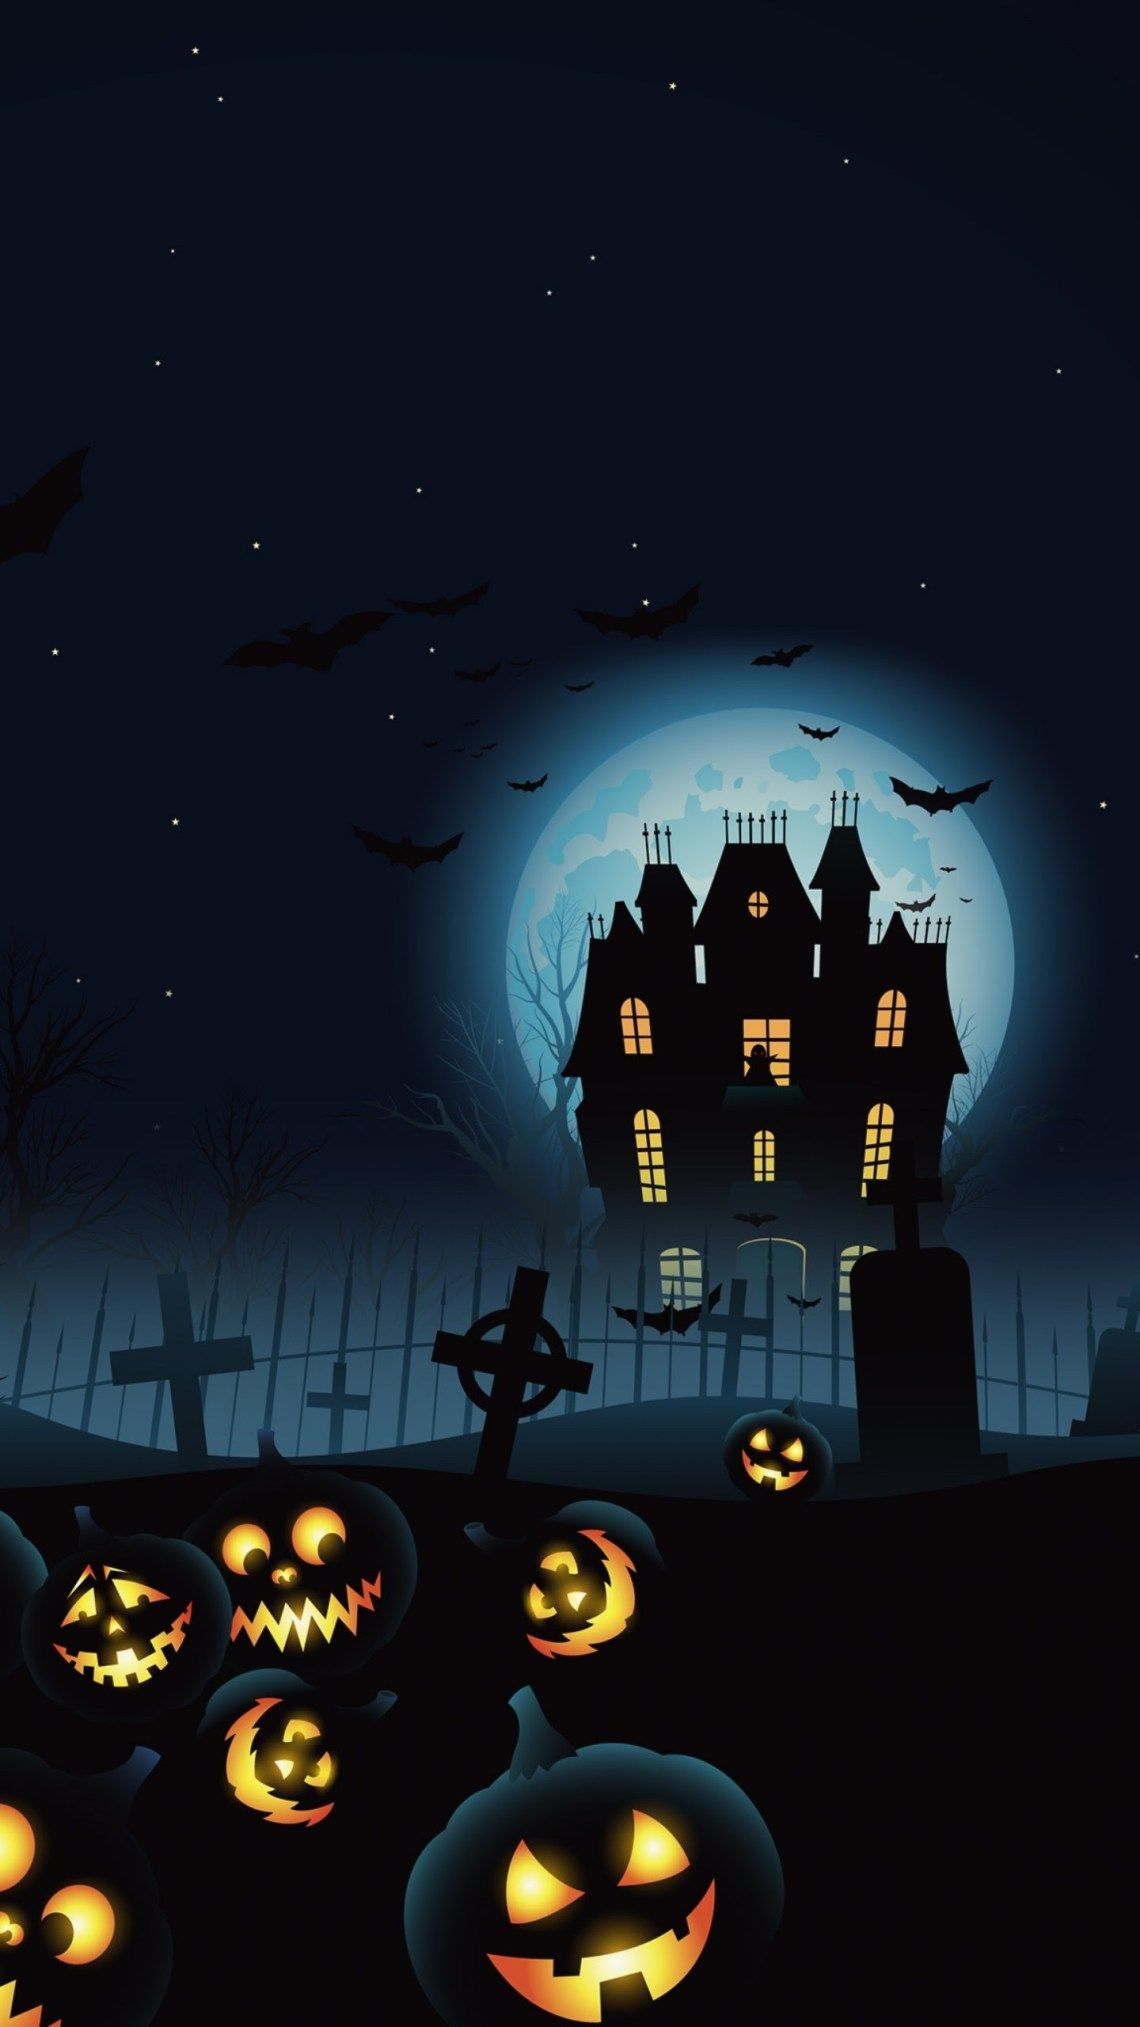 Haunted House Hallowen Wallpaper Fondo Halloween Pantallas De Halloween Imagenes De Calavera